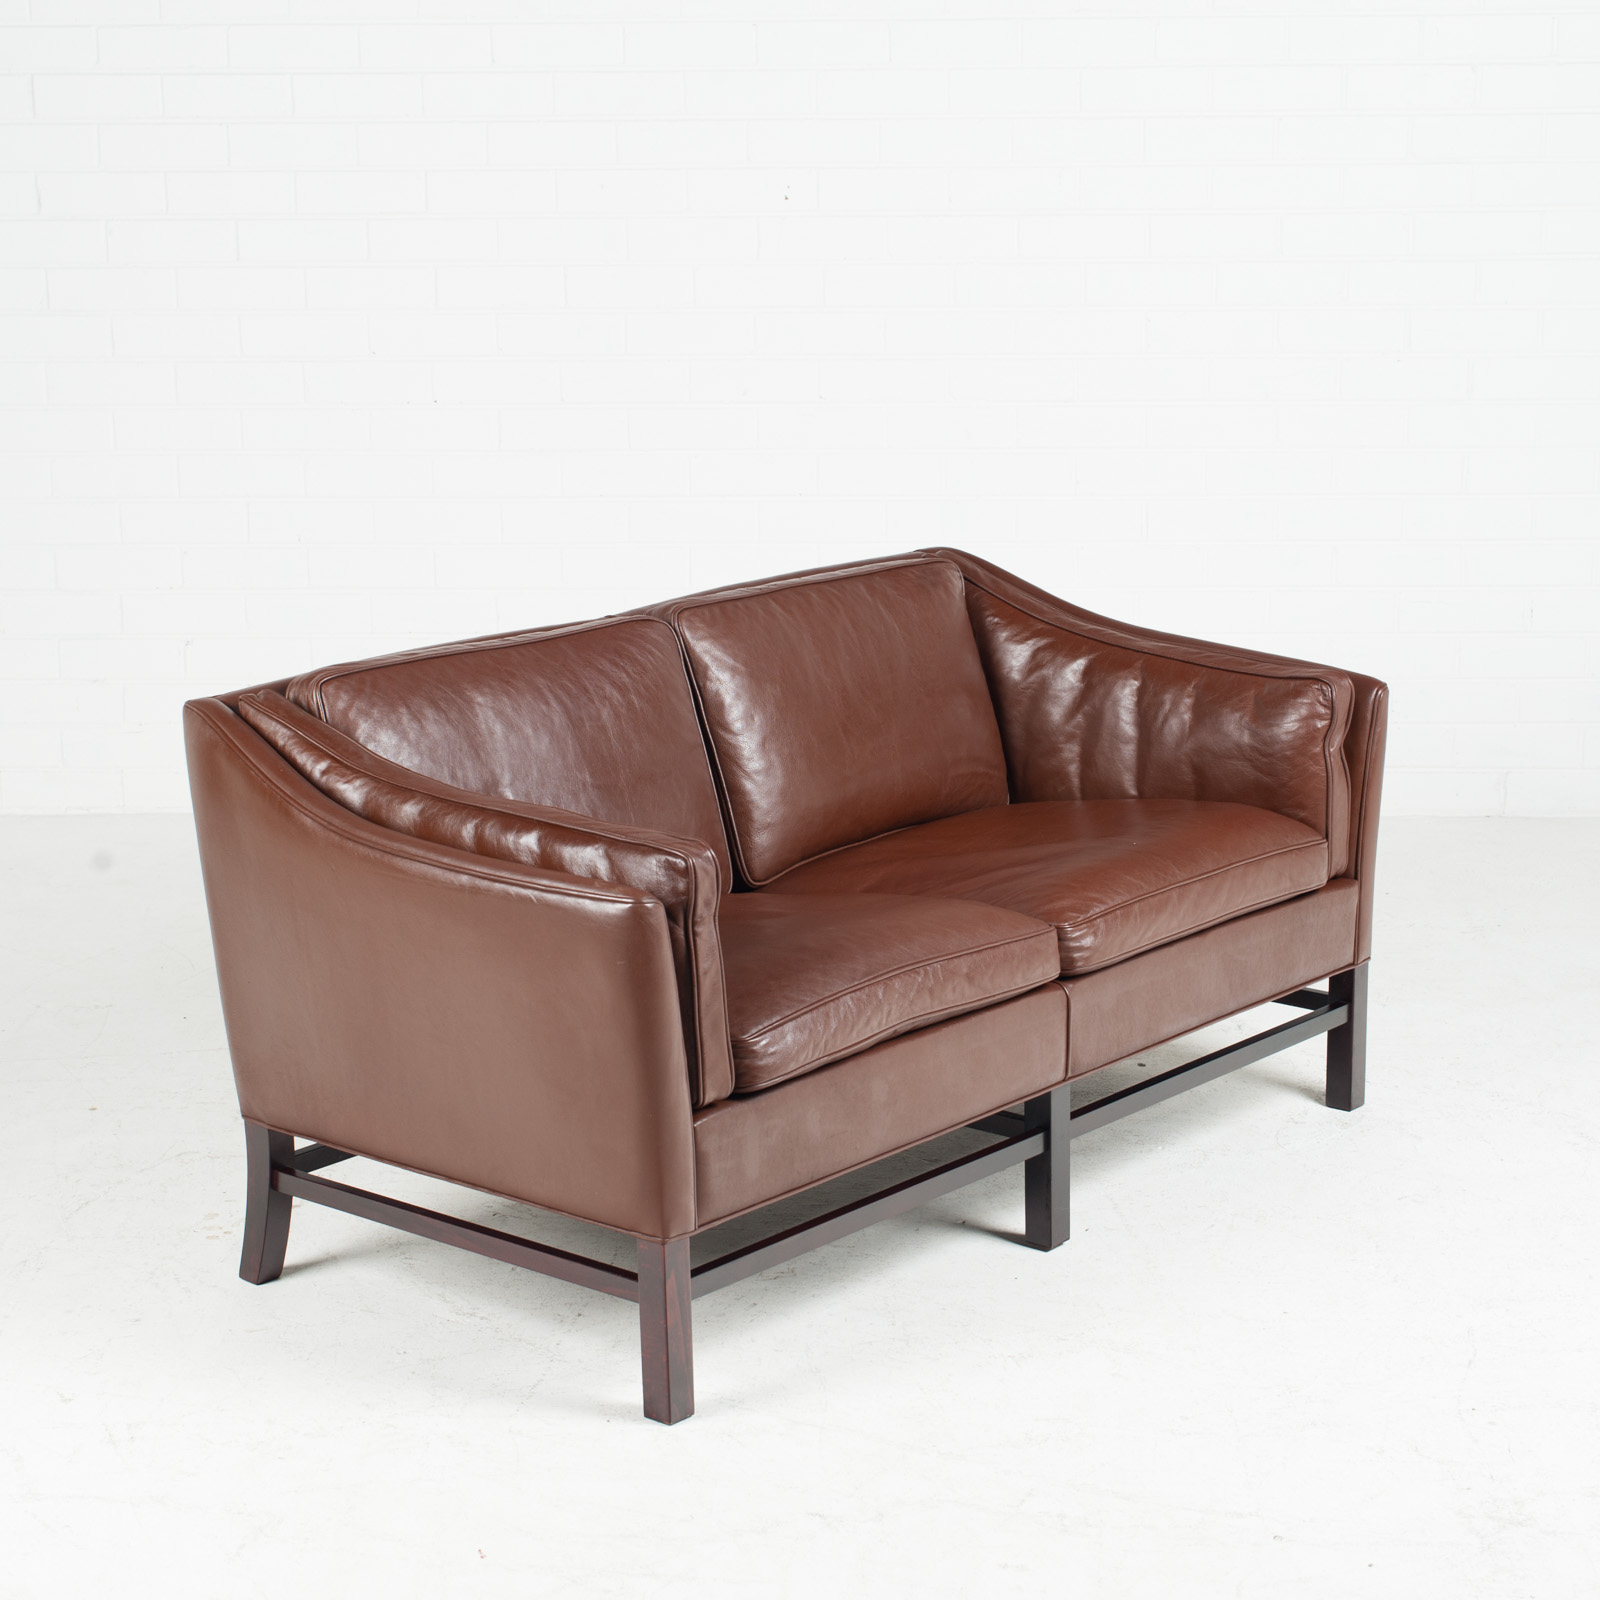 2 Seater Leather Sofa Brown: 2 Seat Sofa By Grant Mobelfabrik In Chocolate Brown